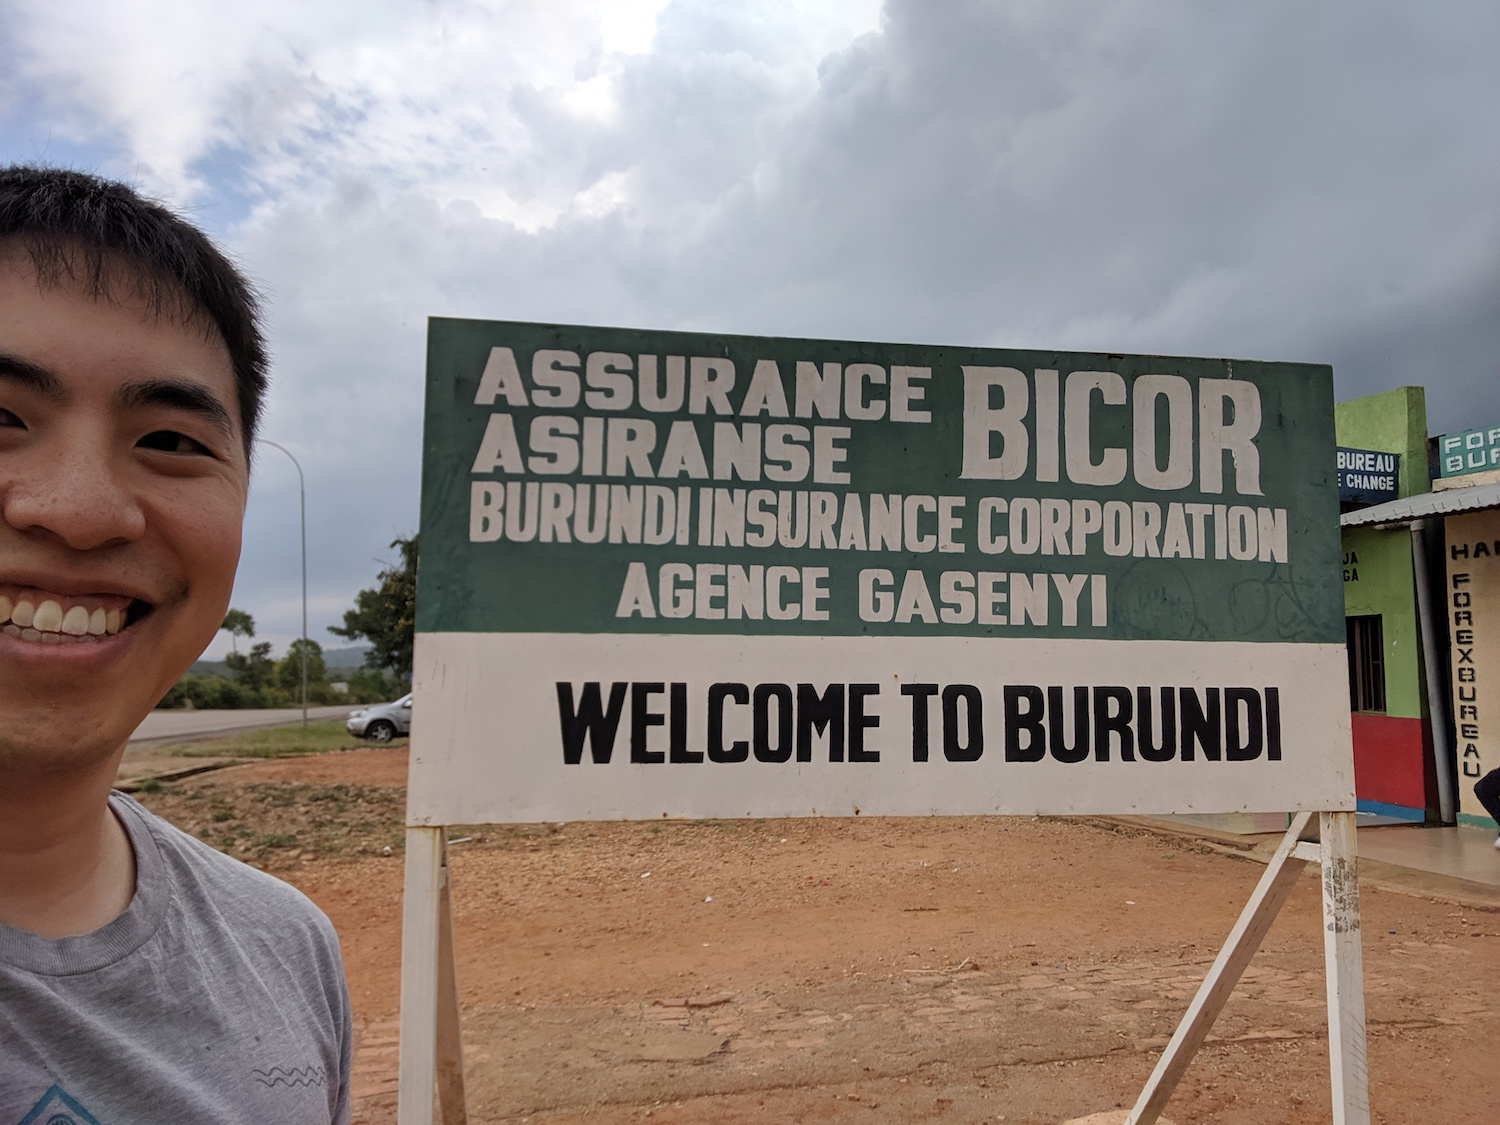 burundi, Burundi – Country #81 In My Mission to Visit All the Countries in the World